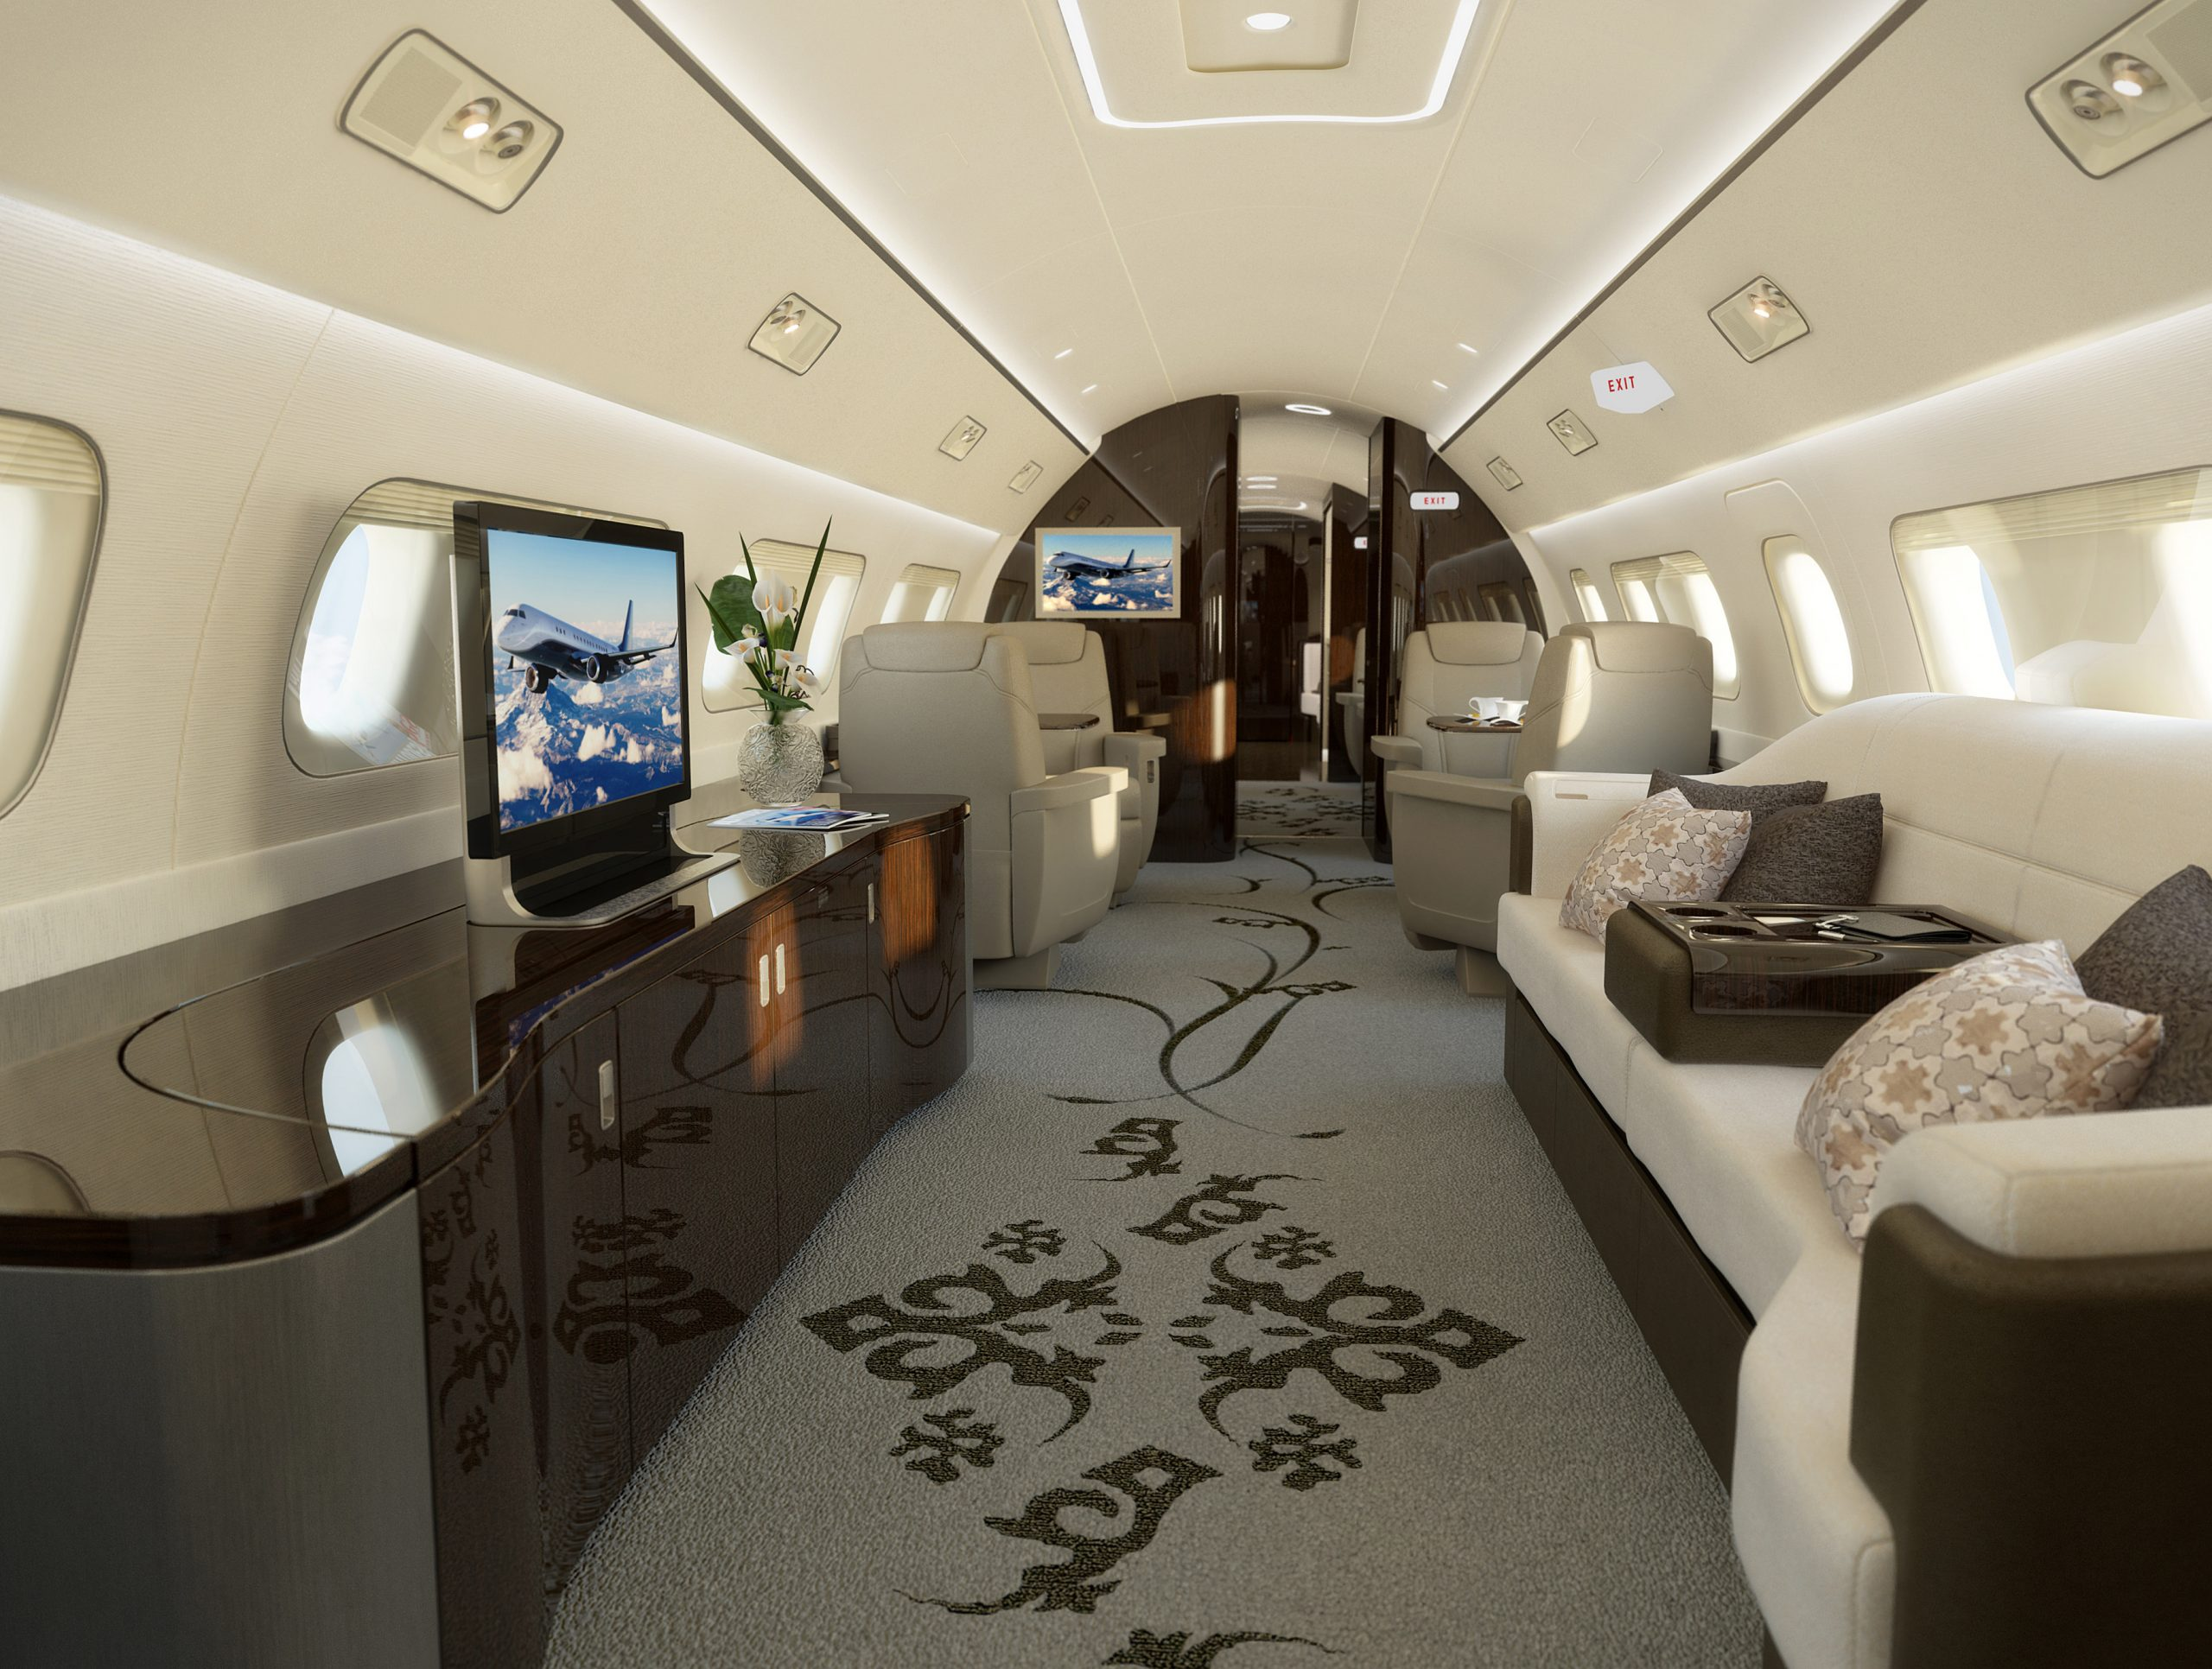 Embraer private jet charter Embraer business jet Embraer corporate jet Embraer charter1 scaled - Embraer private jet builder Embraer private charter and Embraer jet broker